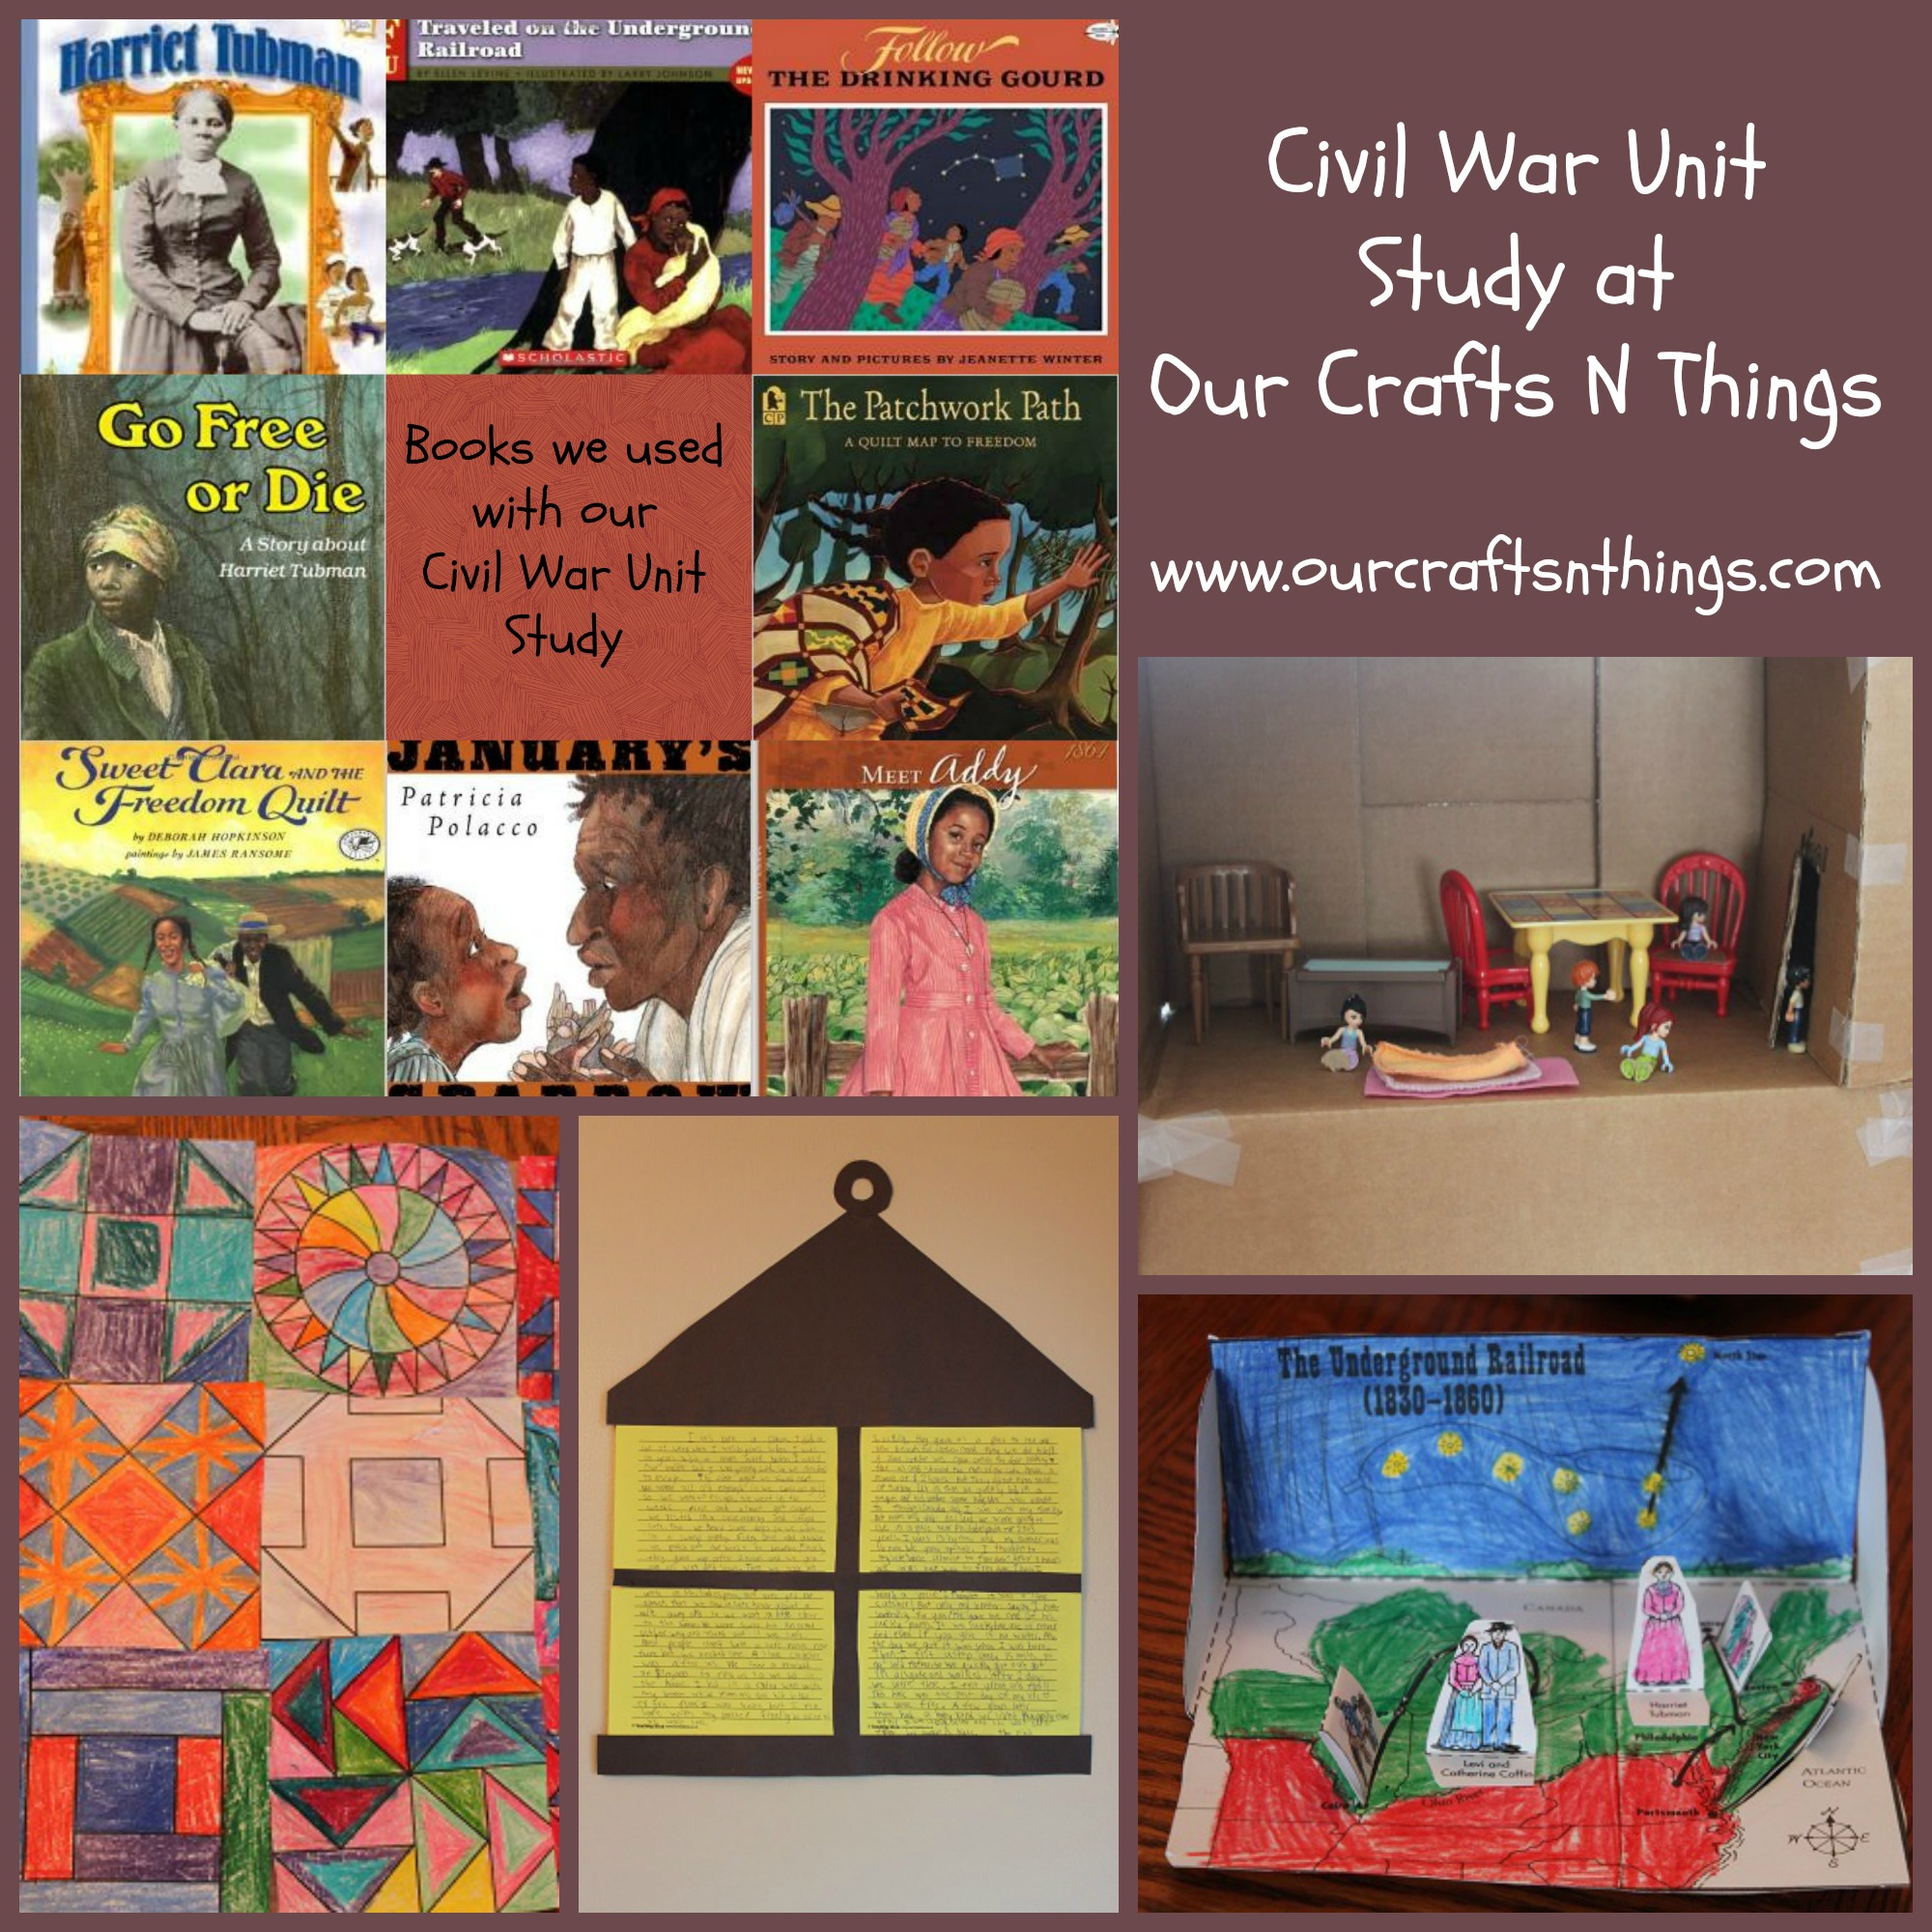 Our Crafts N Things Blog Archive Civil War Unit